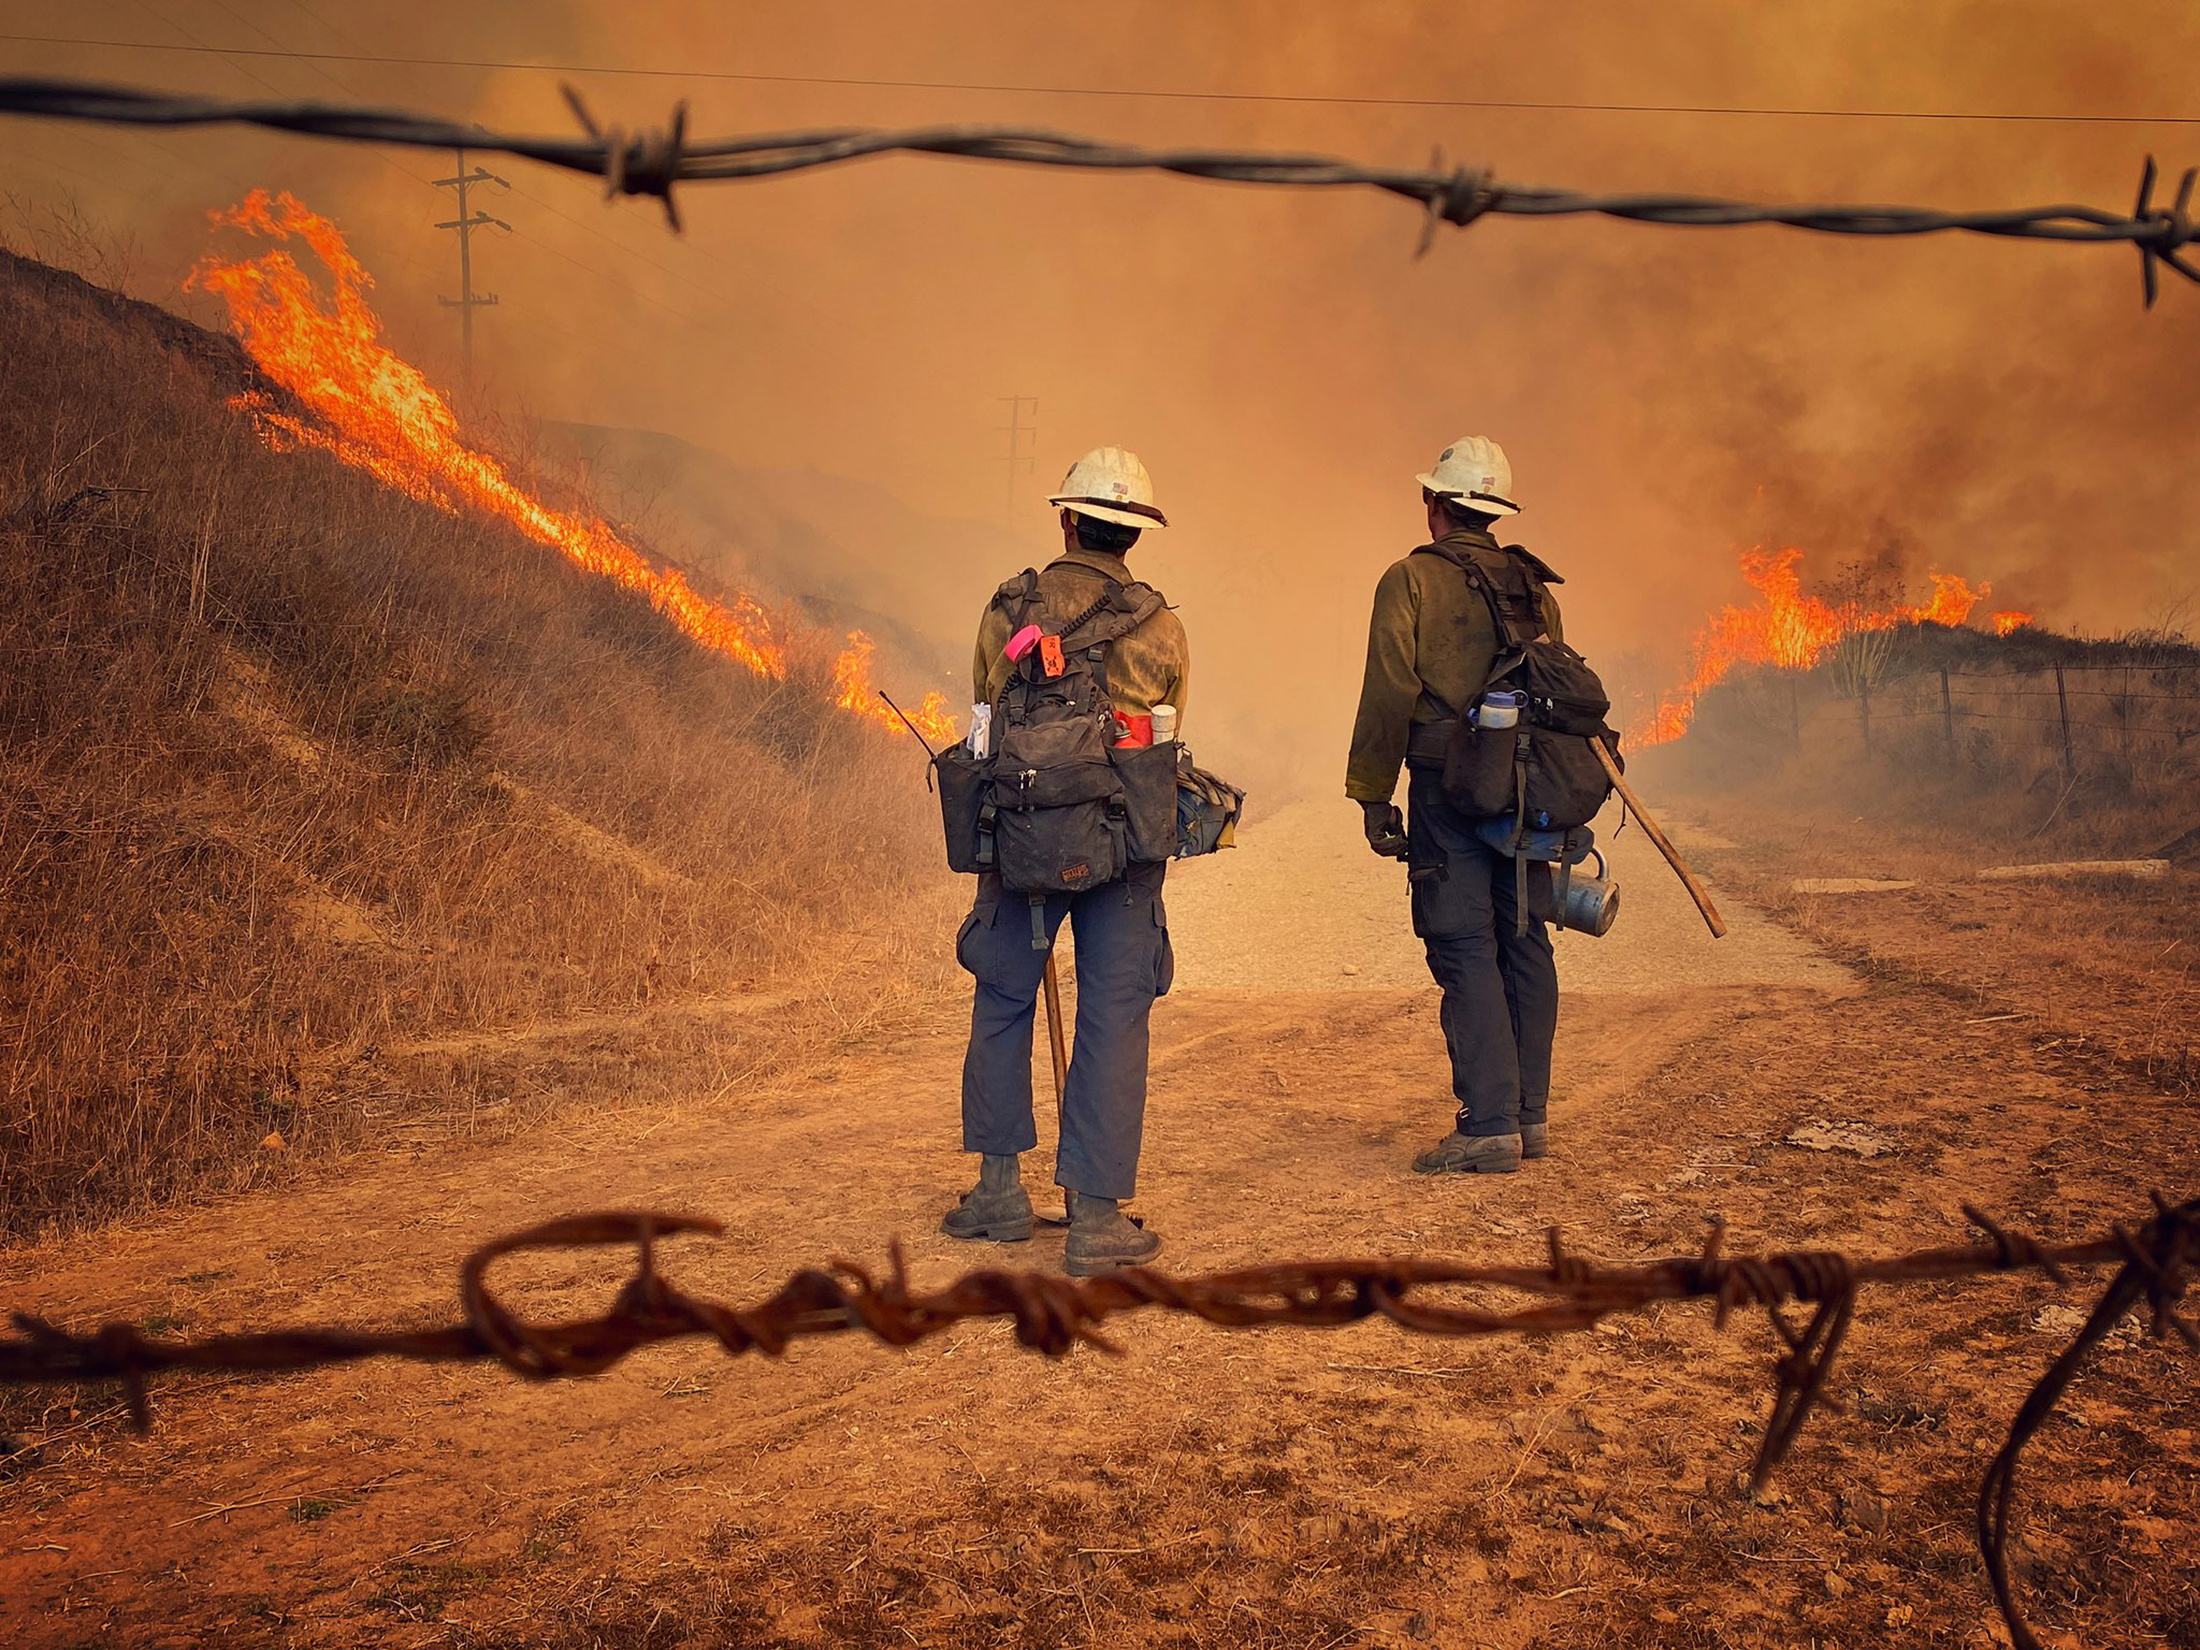 Santa Barbara County Fire Hand Crew members burn off pockets of grass in the Alisal Fire along northbound Highway 101 north of Arroyo Hondo Canyon, California, U.S. October 12, 2021. Mike Eliason/SBCo FD/Handout via REUTERS